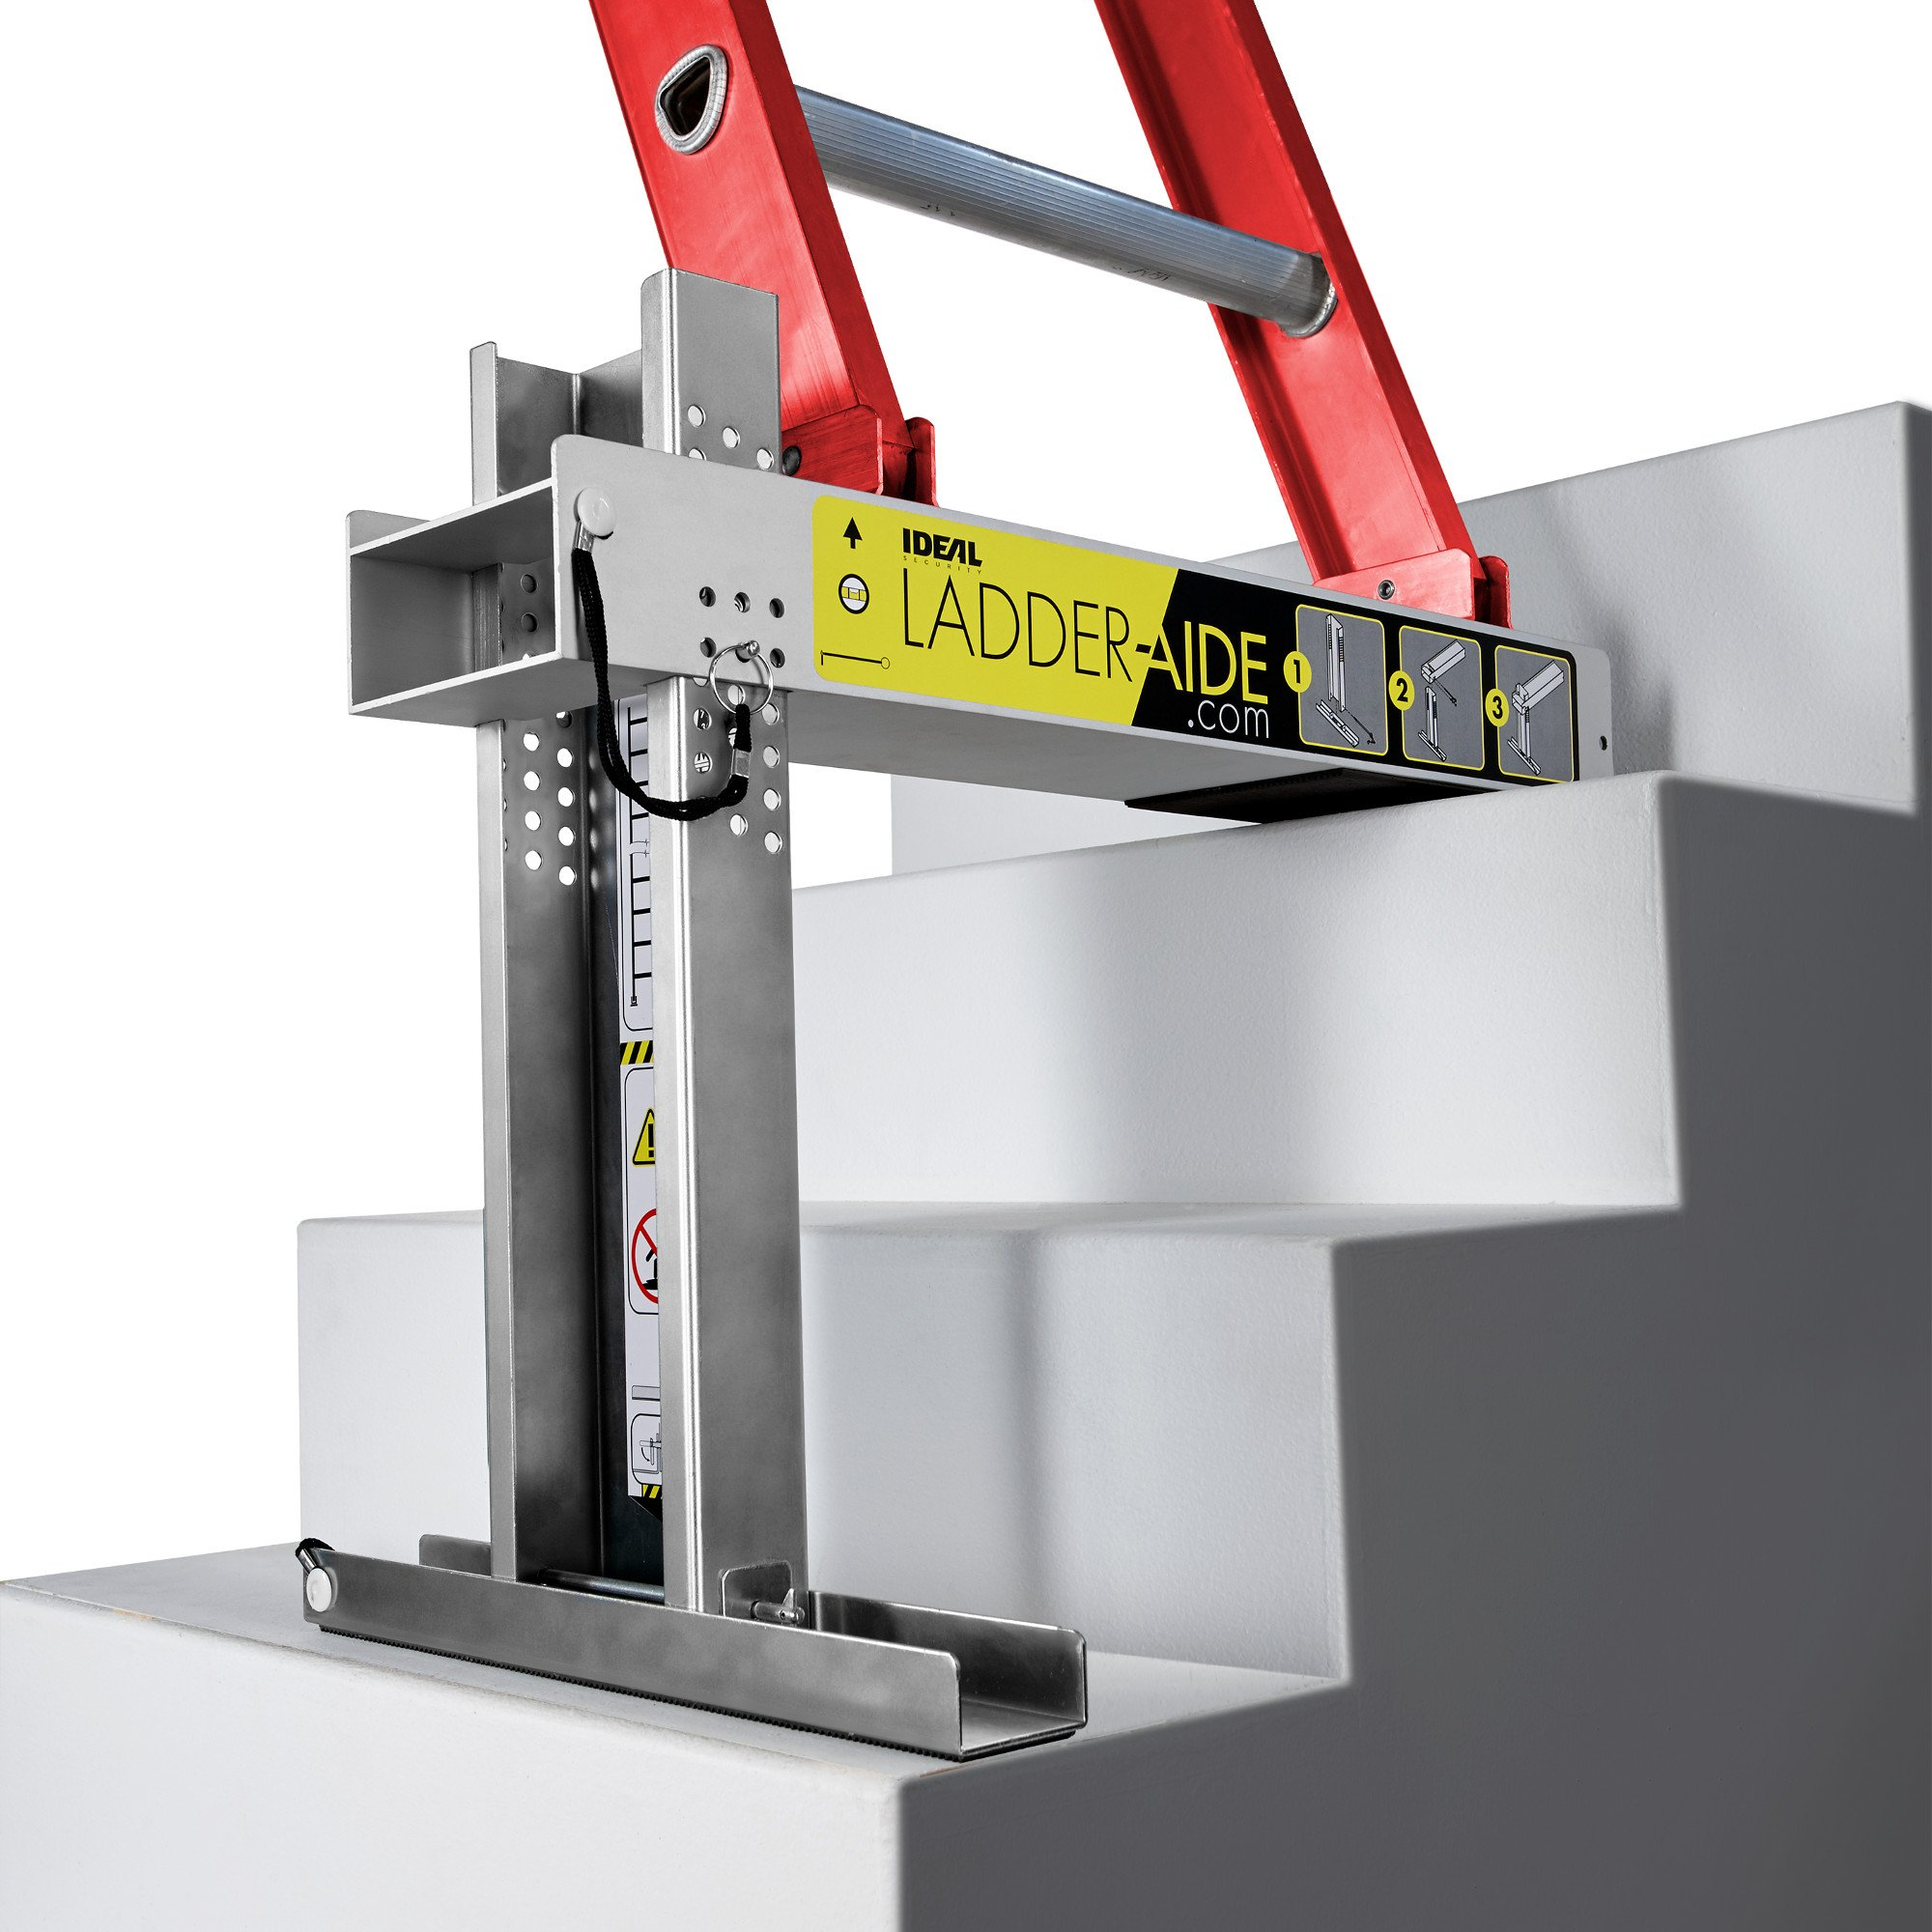 Ideal Security Ladder-Aide, For type 2 ladders, the safe and easy way to work on stairs